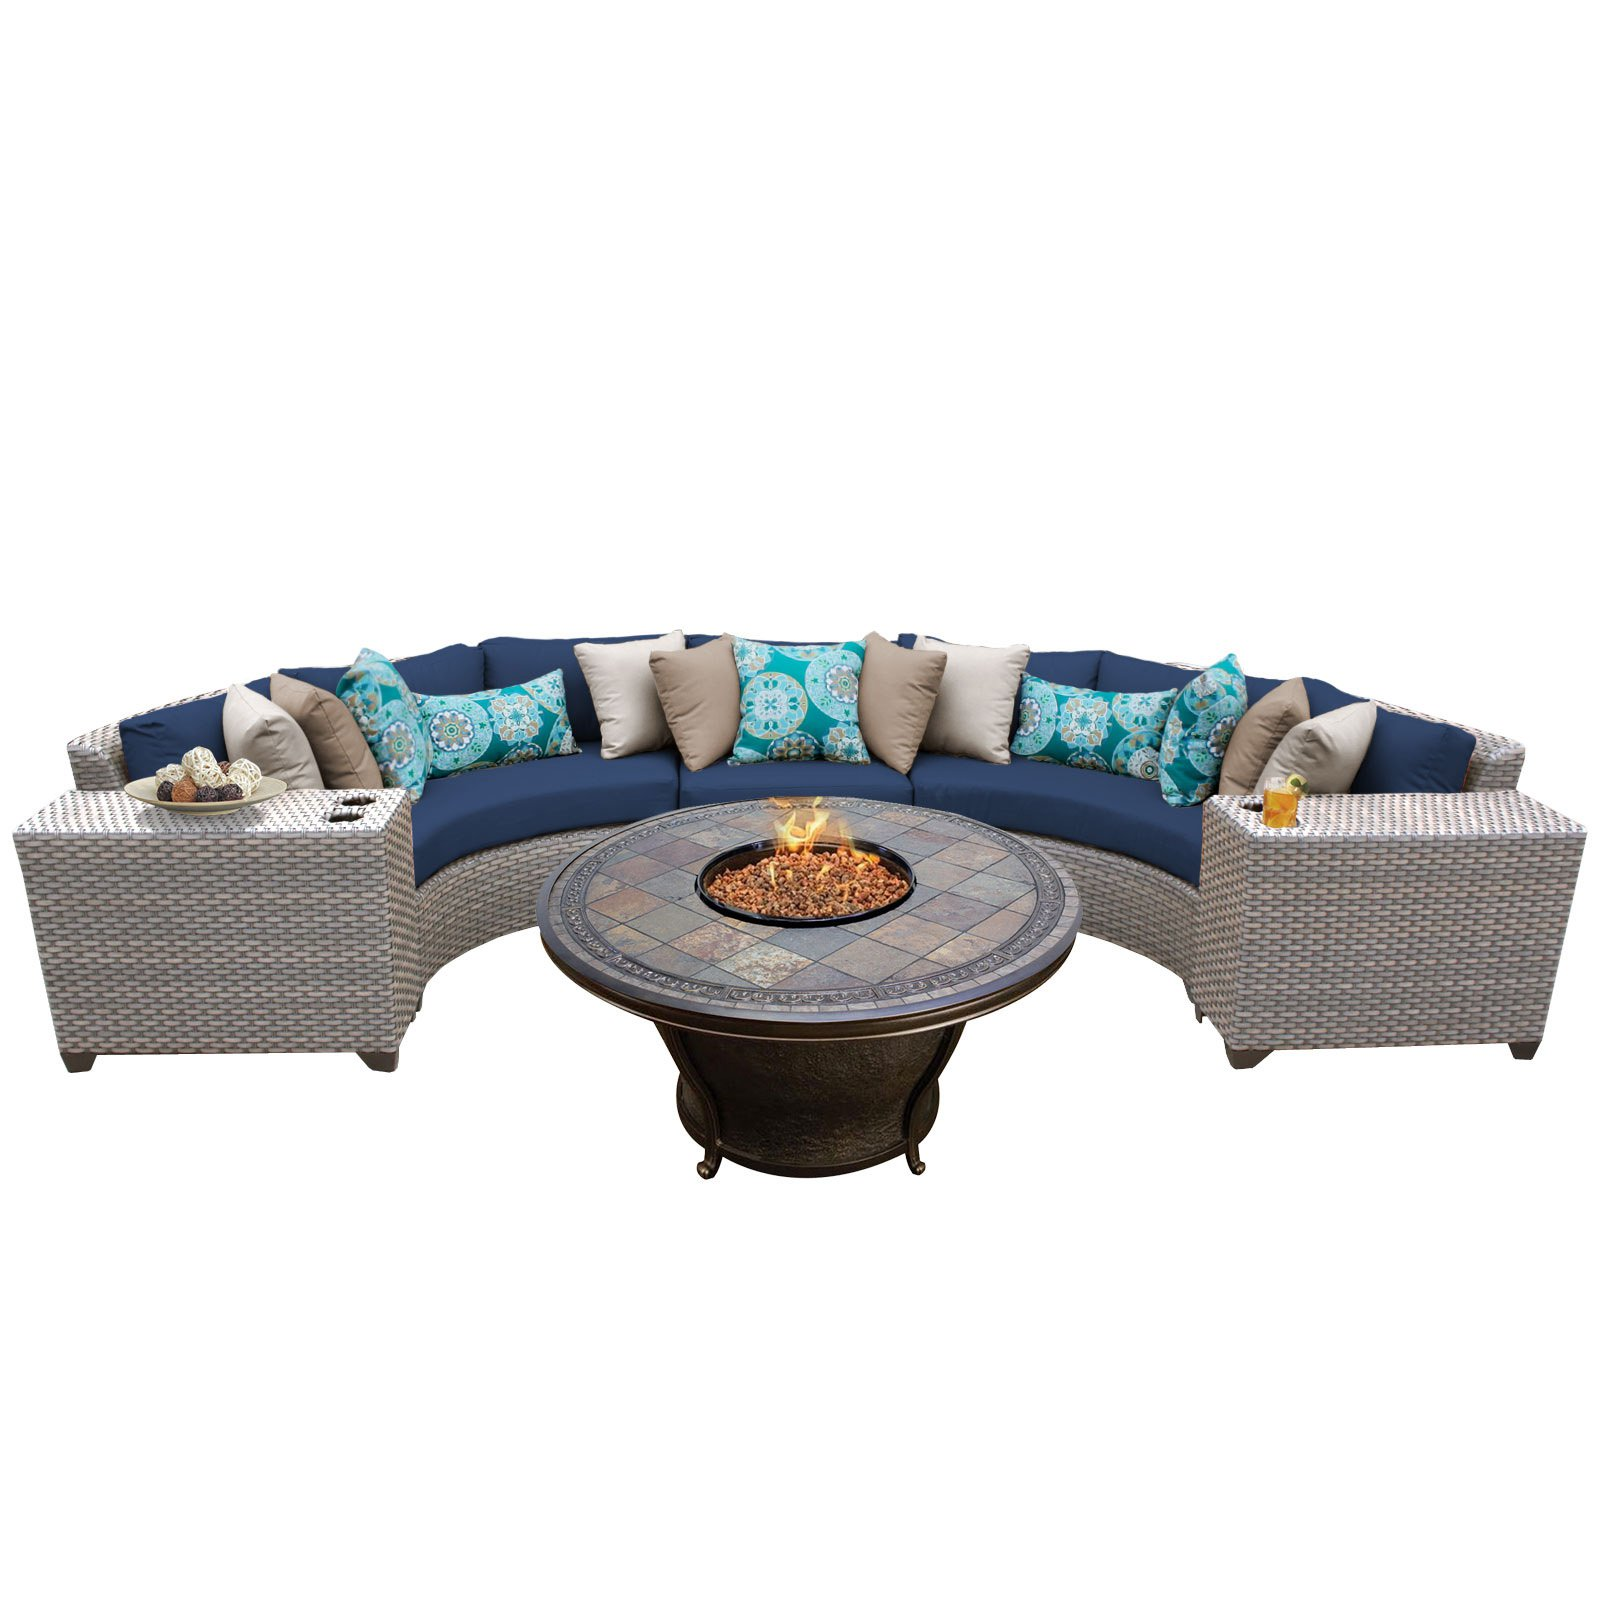 TK Classics Florence Wicker Patio Set with Tempe Fire Pit Table